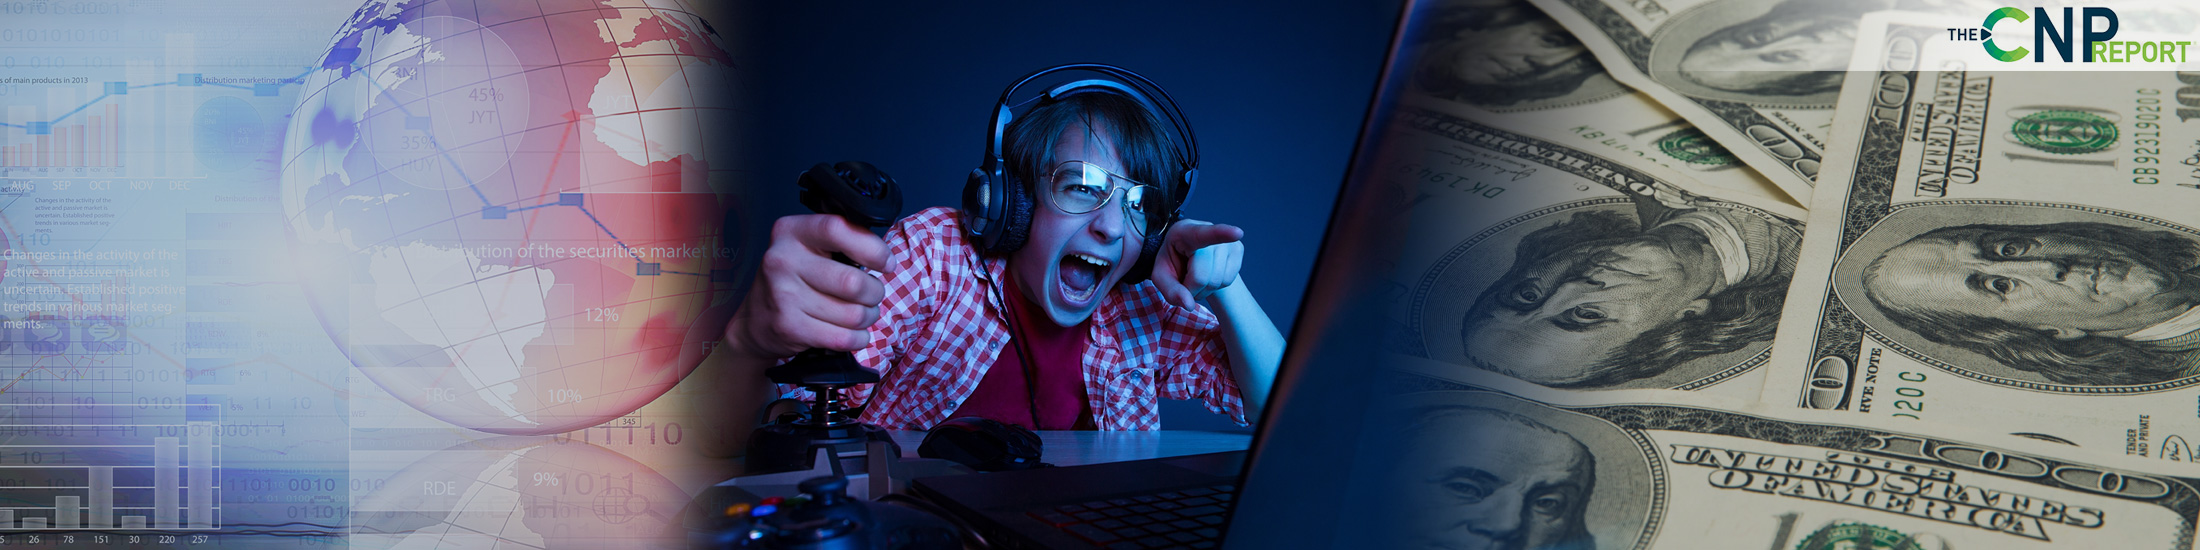 Criminals Turn Quick Profits Attacking Gaming Websites